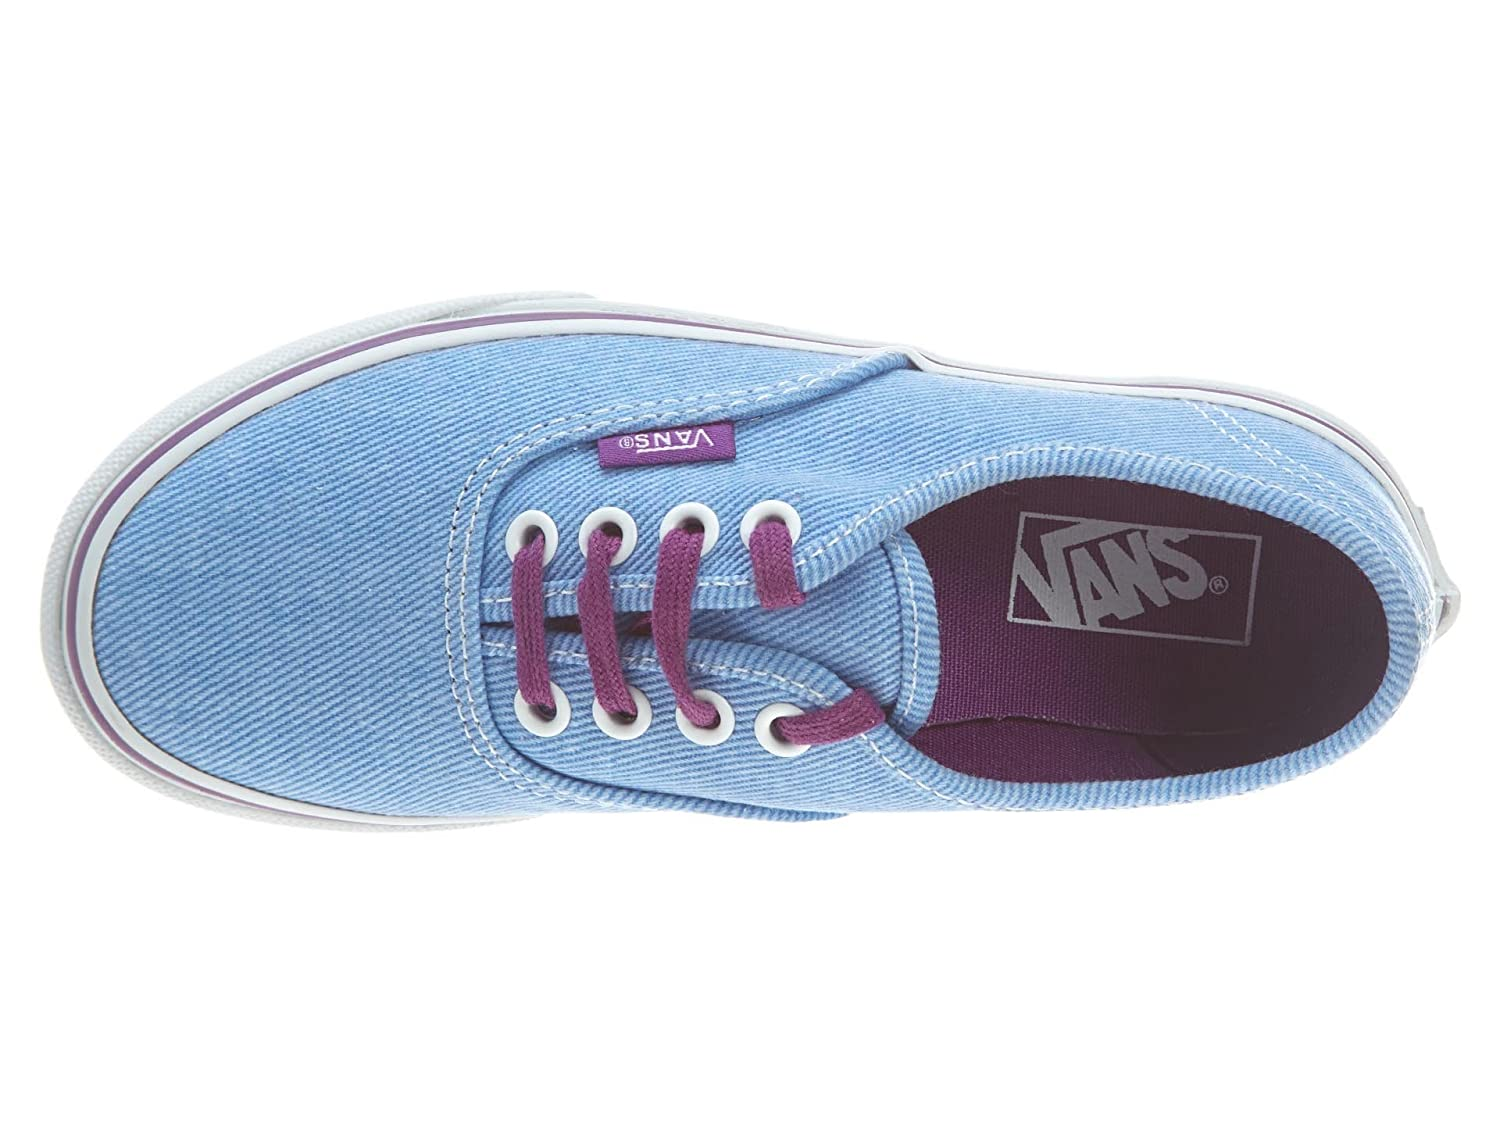 Vans Authentic (Canvas) Sneakers for Unisex Kids in Classic Colors, Stylish Prints and Fashionable Designs B00CEGDMEY 4 M US|(Cheetah Lace)fr